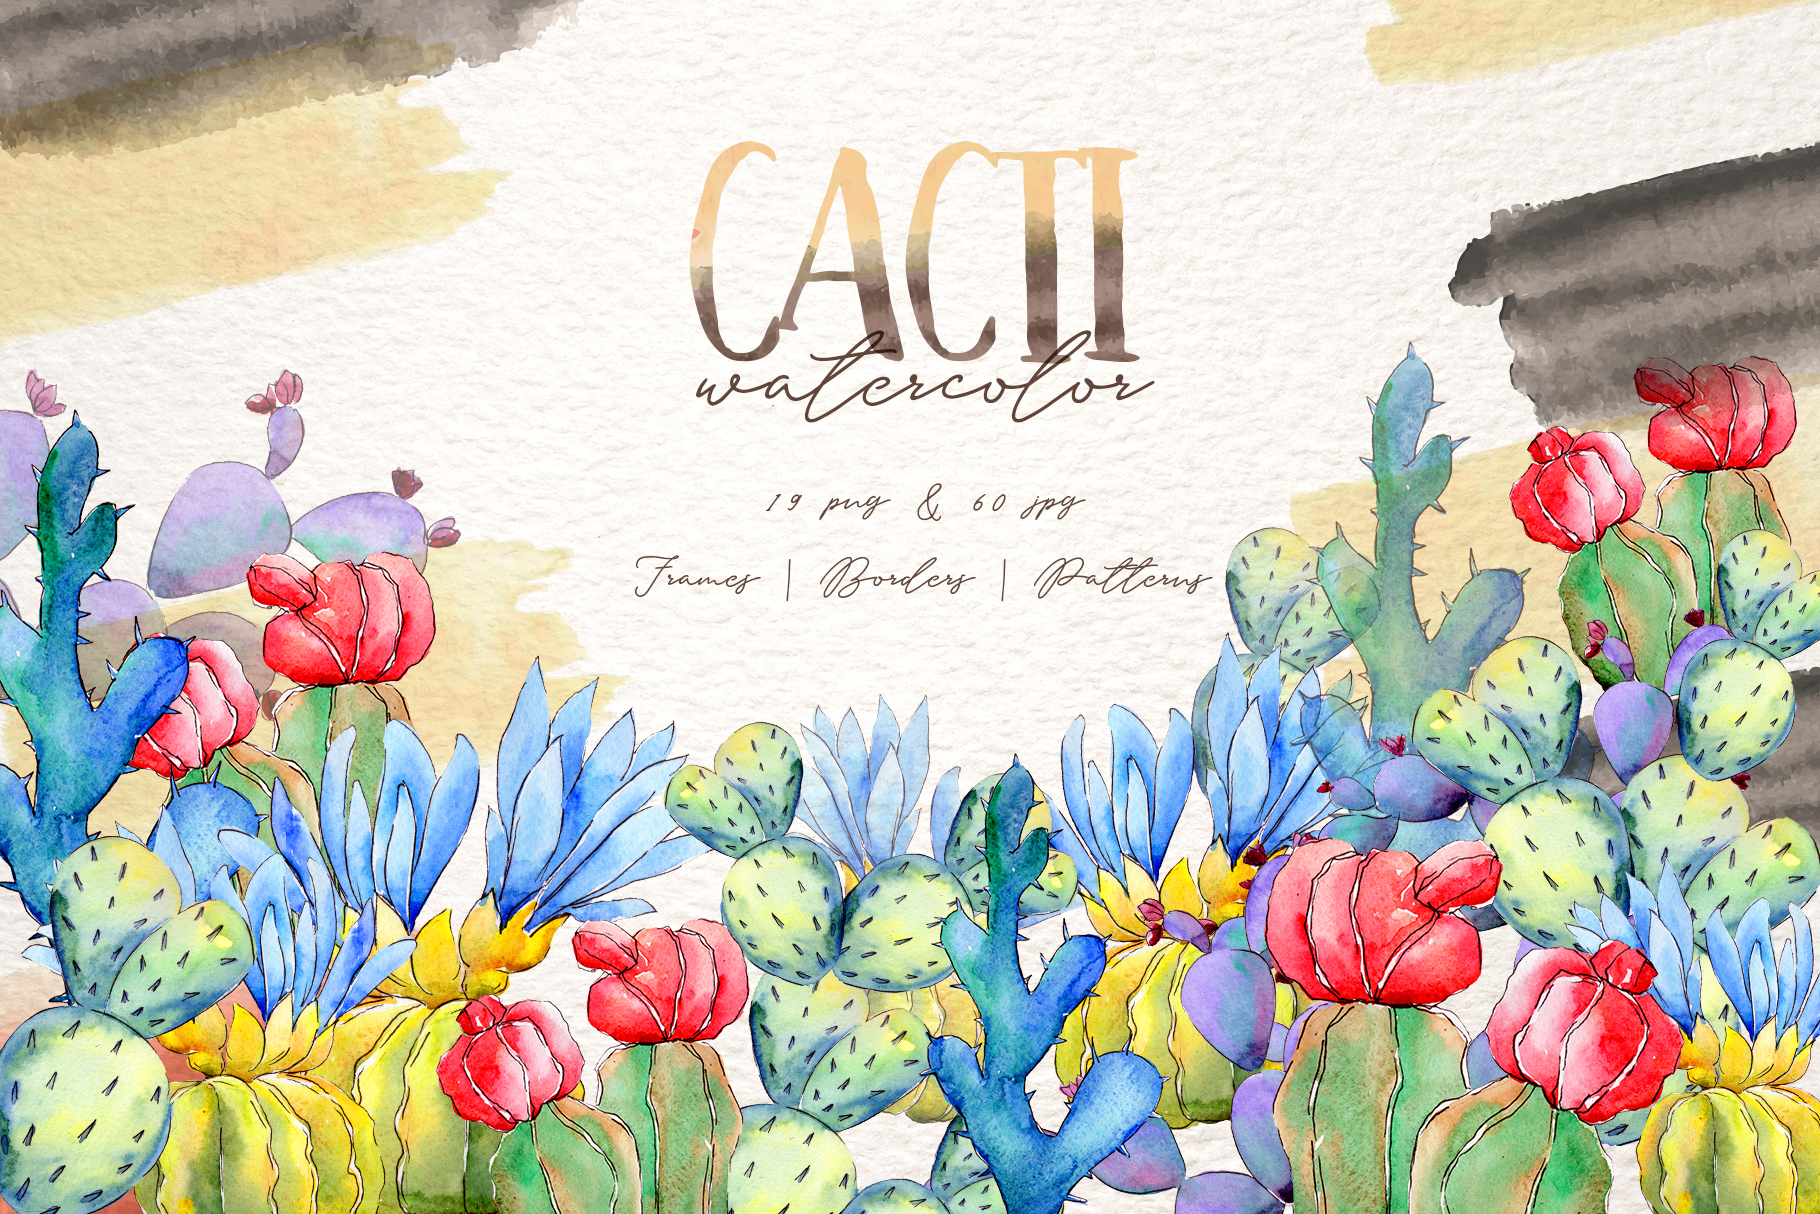 Cool colorful cacti PNG watercolor set example image 1